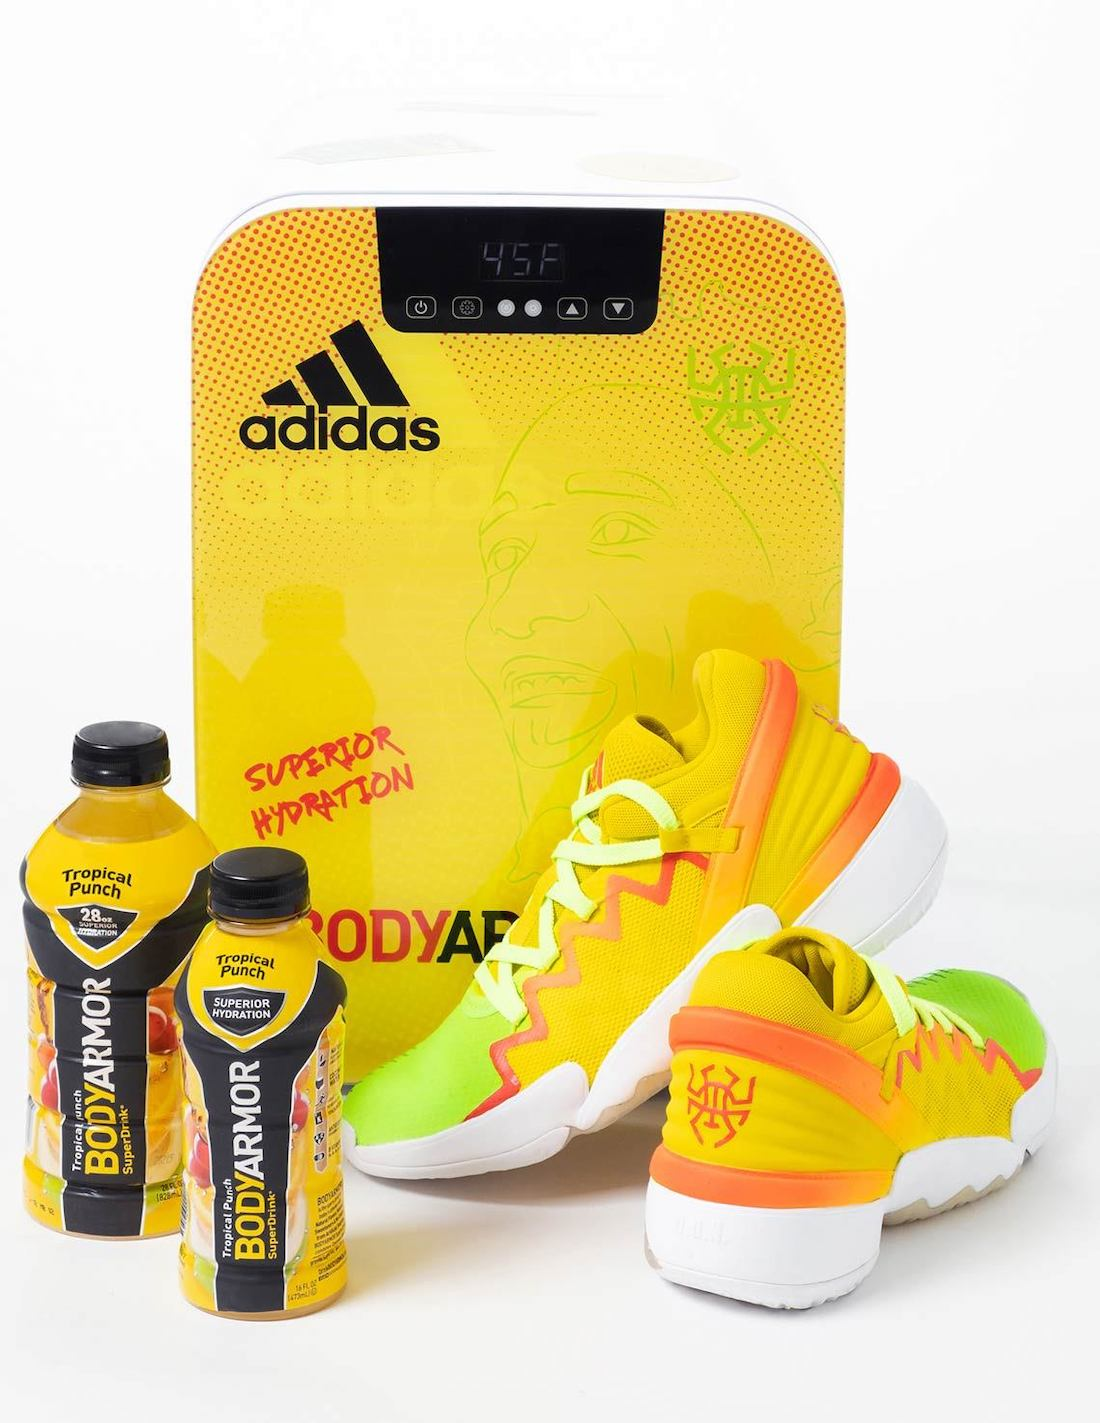 BODYARMOR adidas DON Issue 2 Release Date Info